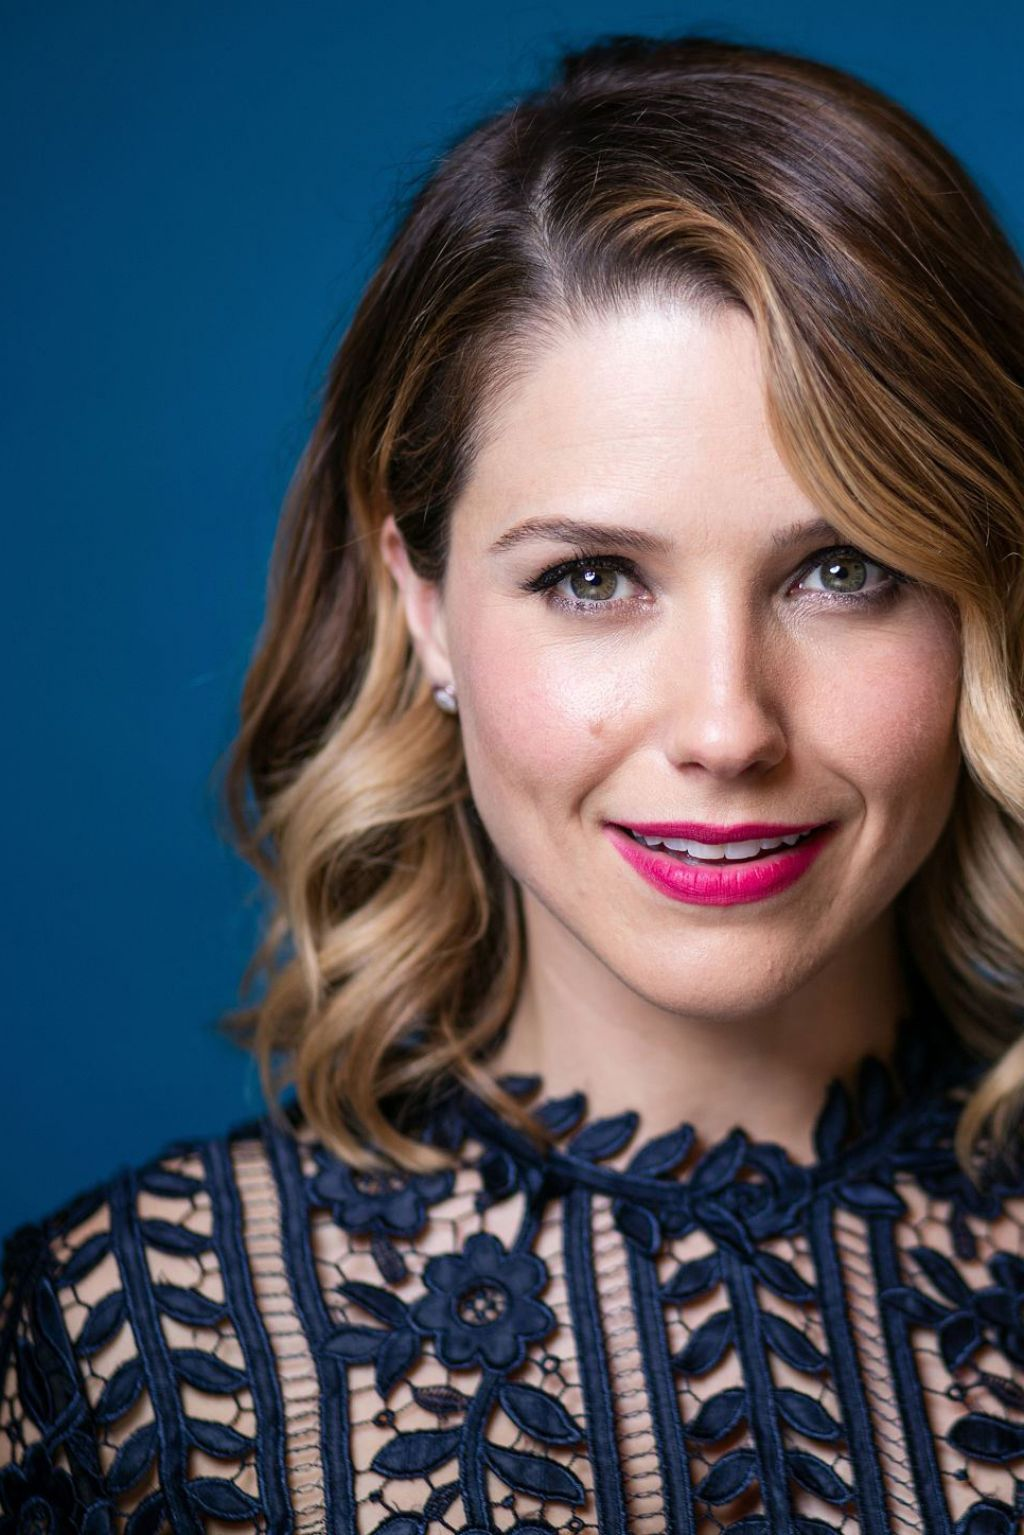 Forum on this topic: Sophia Bush's Bold Makeup Just Won The , sophia-bushs-bold-makeup-just-won-the/